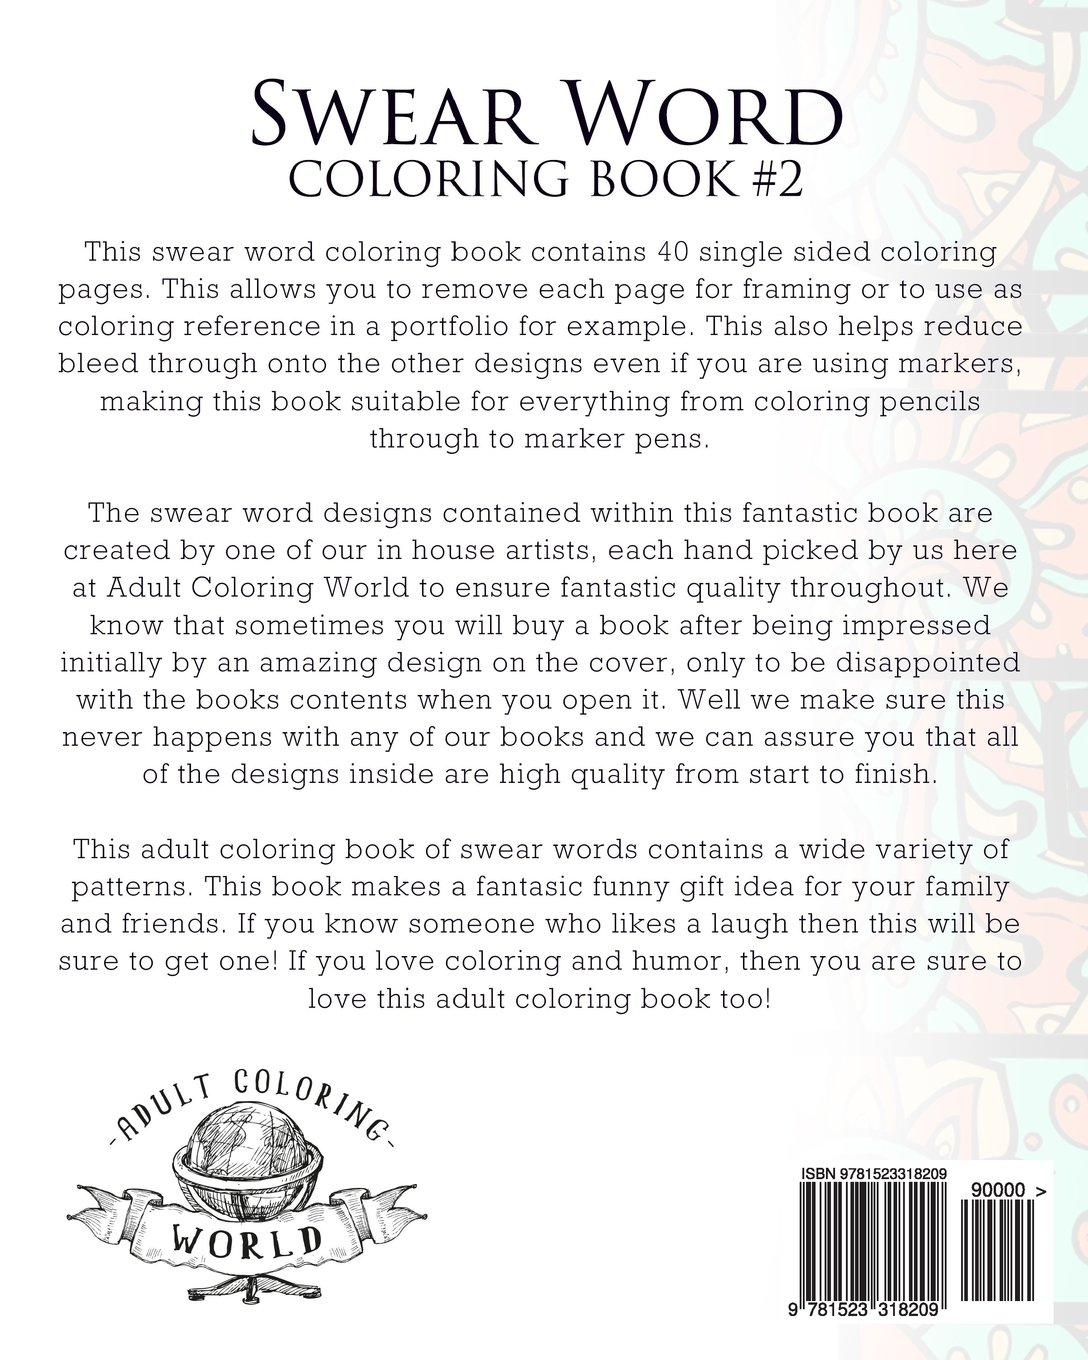 Coloring pages for adults curse words - Amazon Com Swear Word Coloring Book 2 An Adult Coloring Book Of 40 Hilarious Rude And Funny Swearing And Cursing Designs Coloring Book Funny Gift